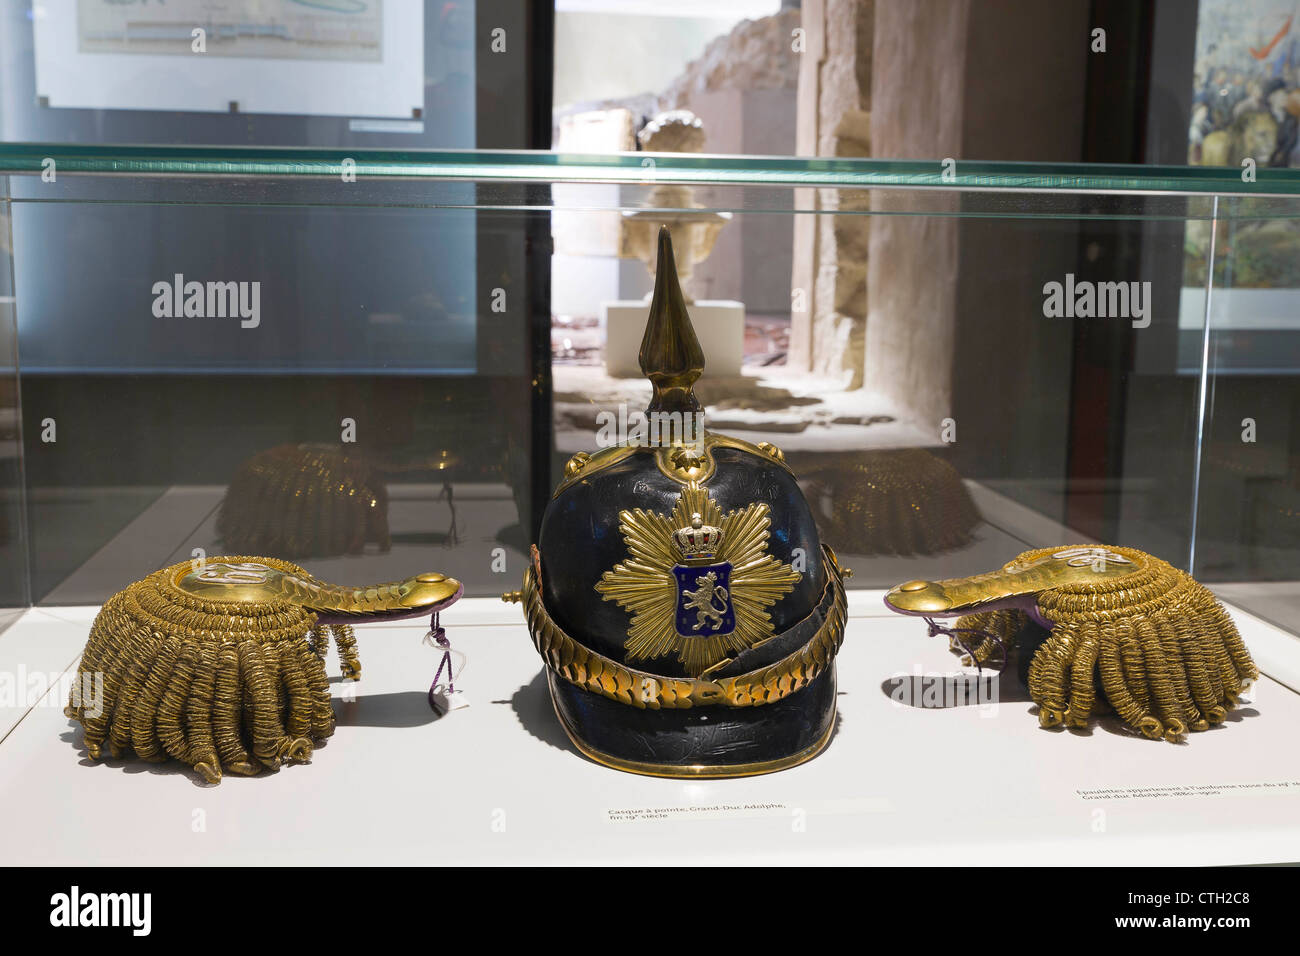 German spiked helmet and epaulettes from Grand Duke Adolphe times. - Stock Image